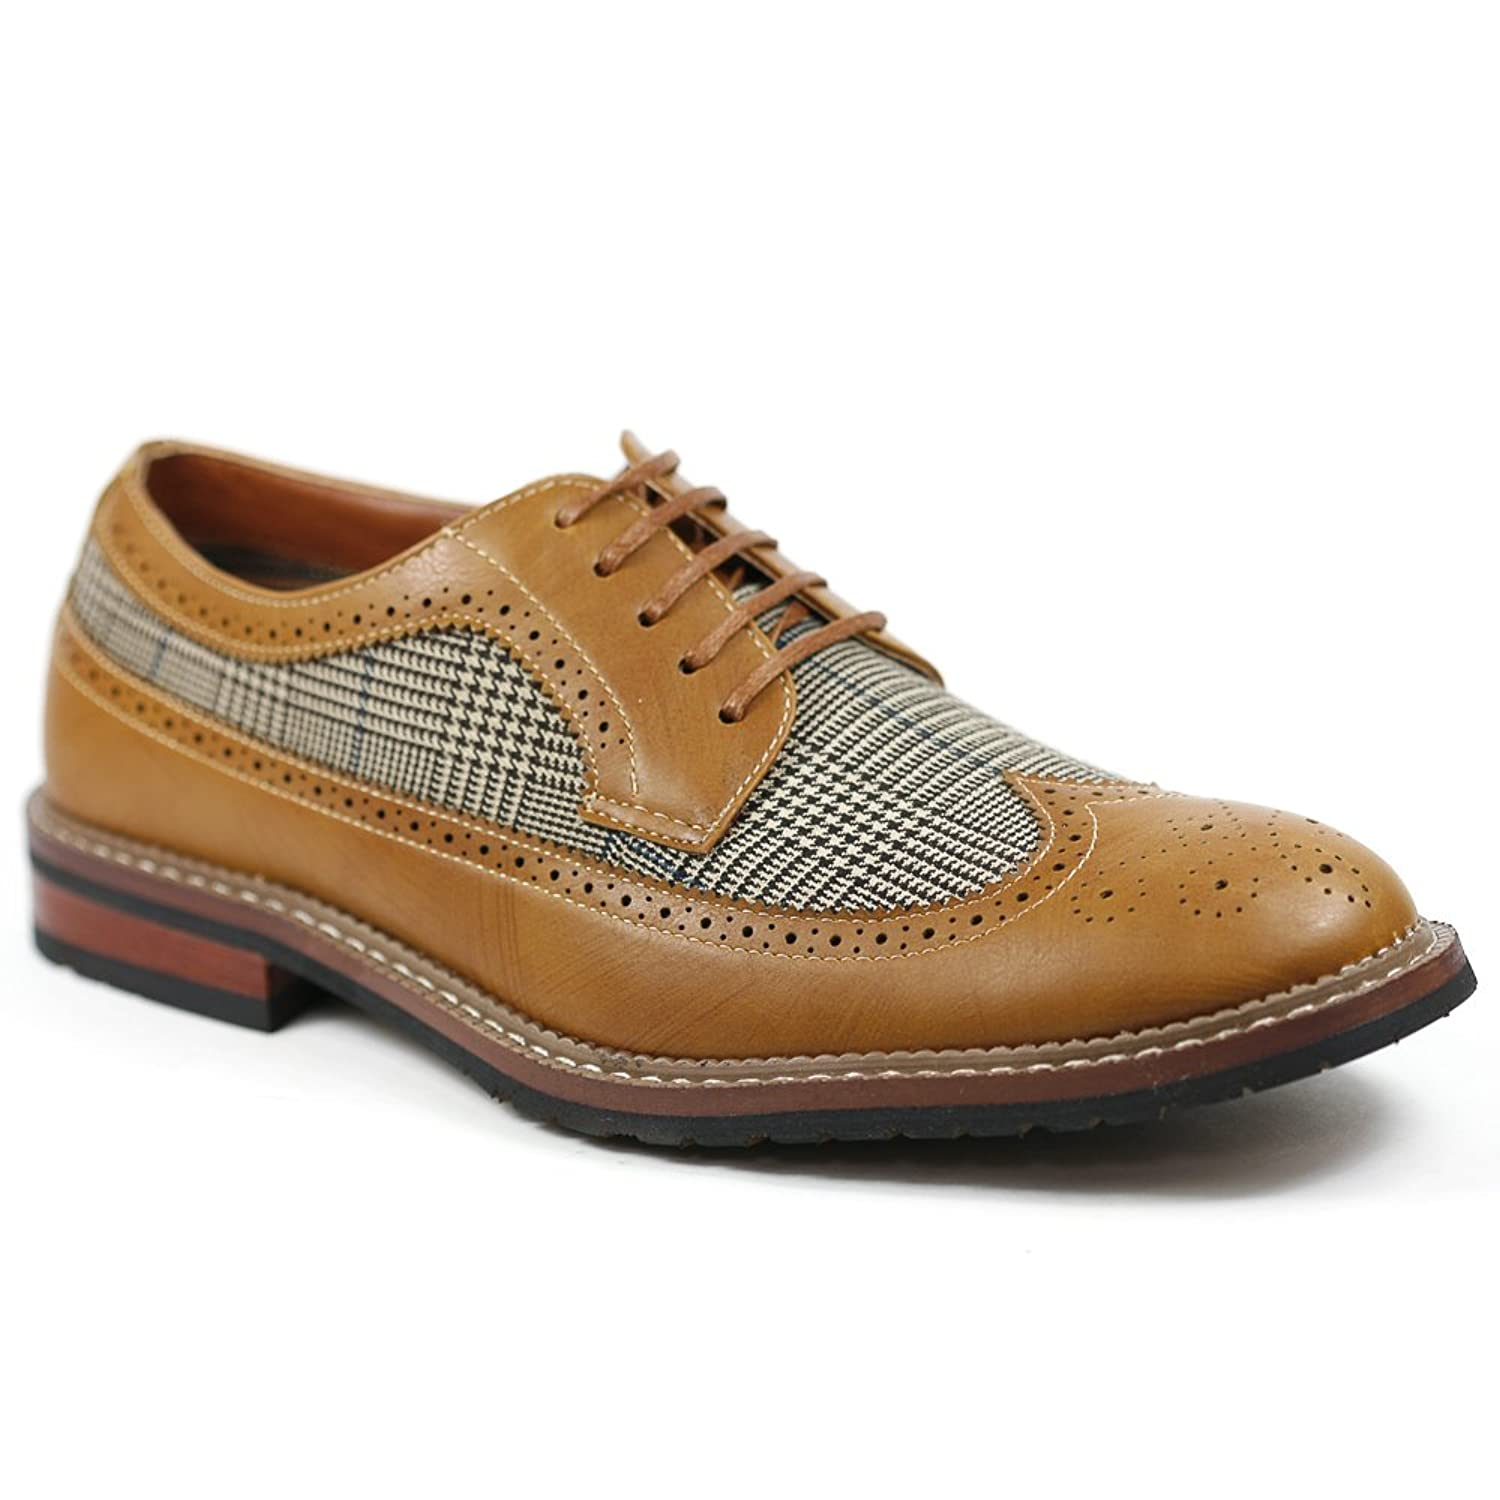 1950s Style Mens Shoes Houndstooth Mens Oxford Dress Classic Shoes $34.99 AT vintagedancer.com